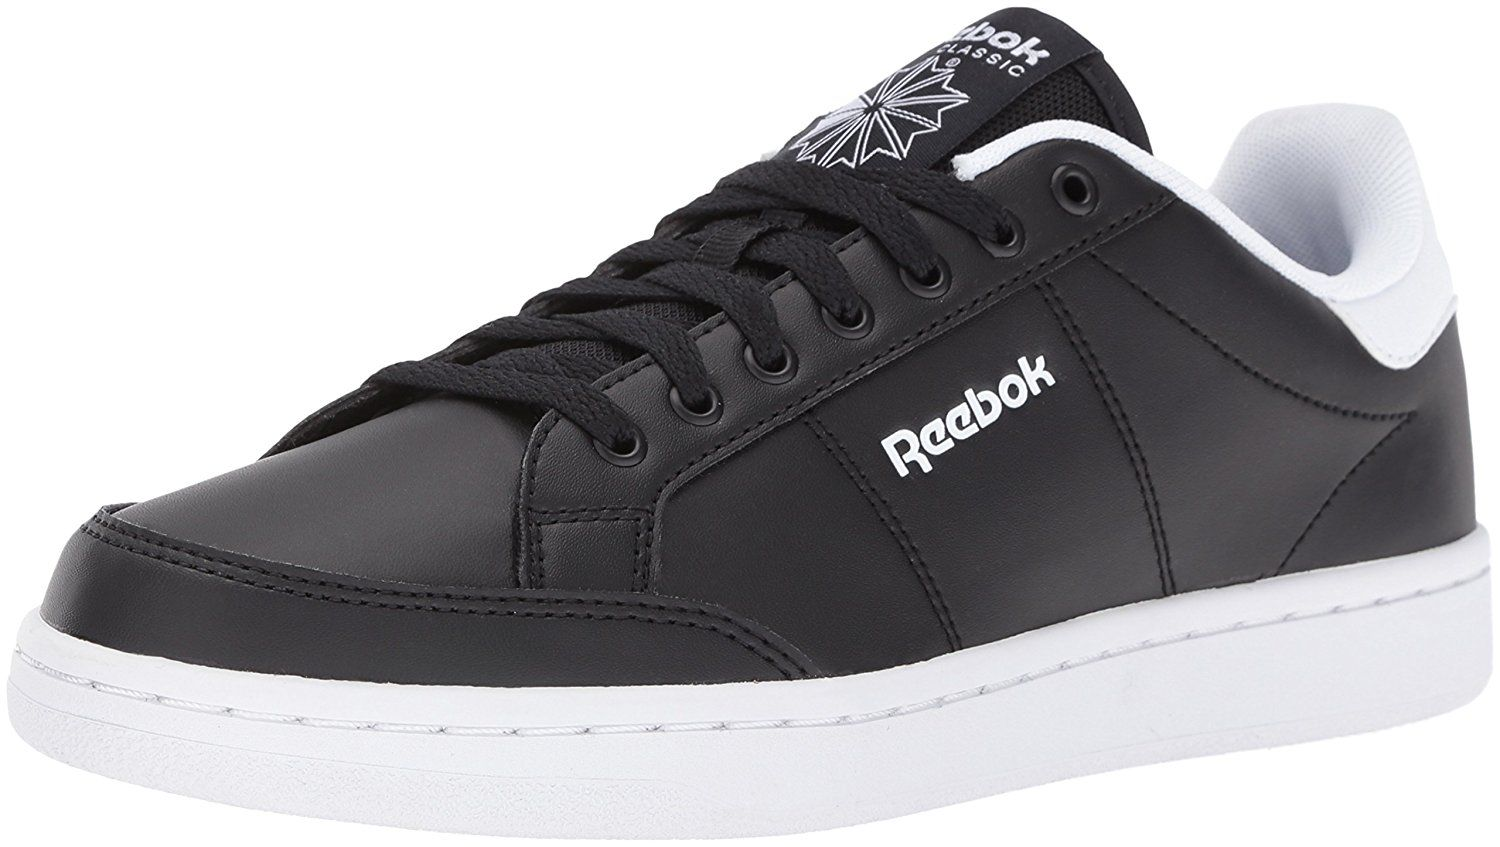 ae125cbc7a442e Reebok Men s Royal Smash Fashion Sneaker   Discover this special product